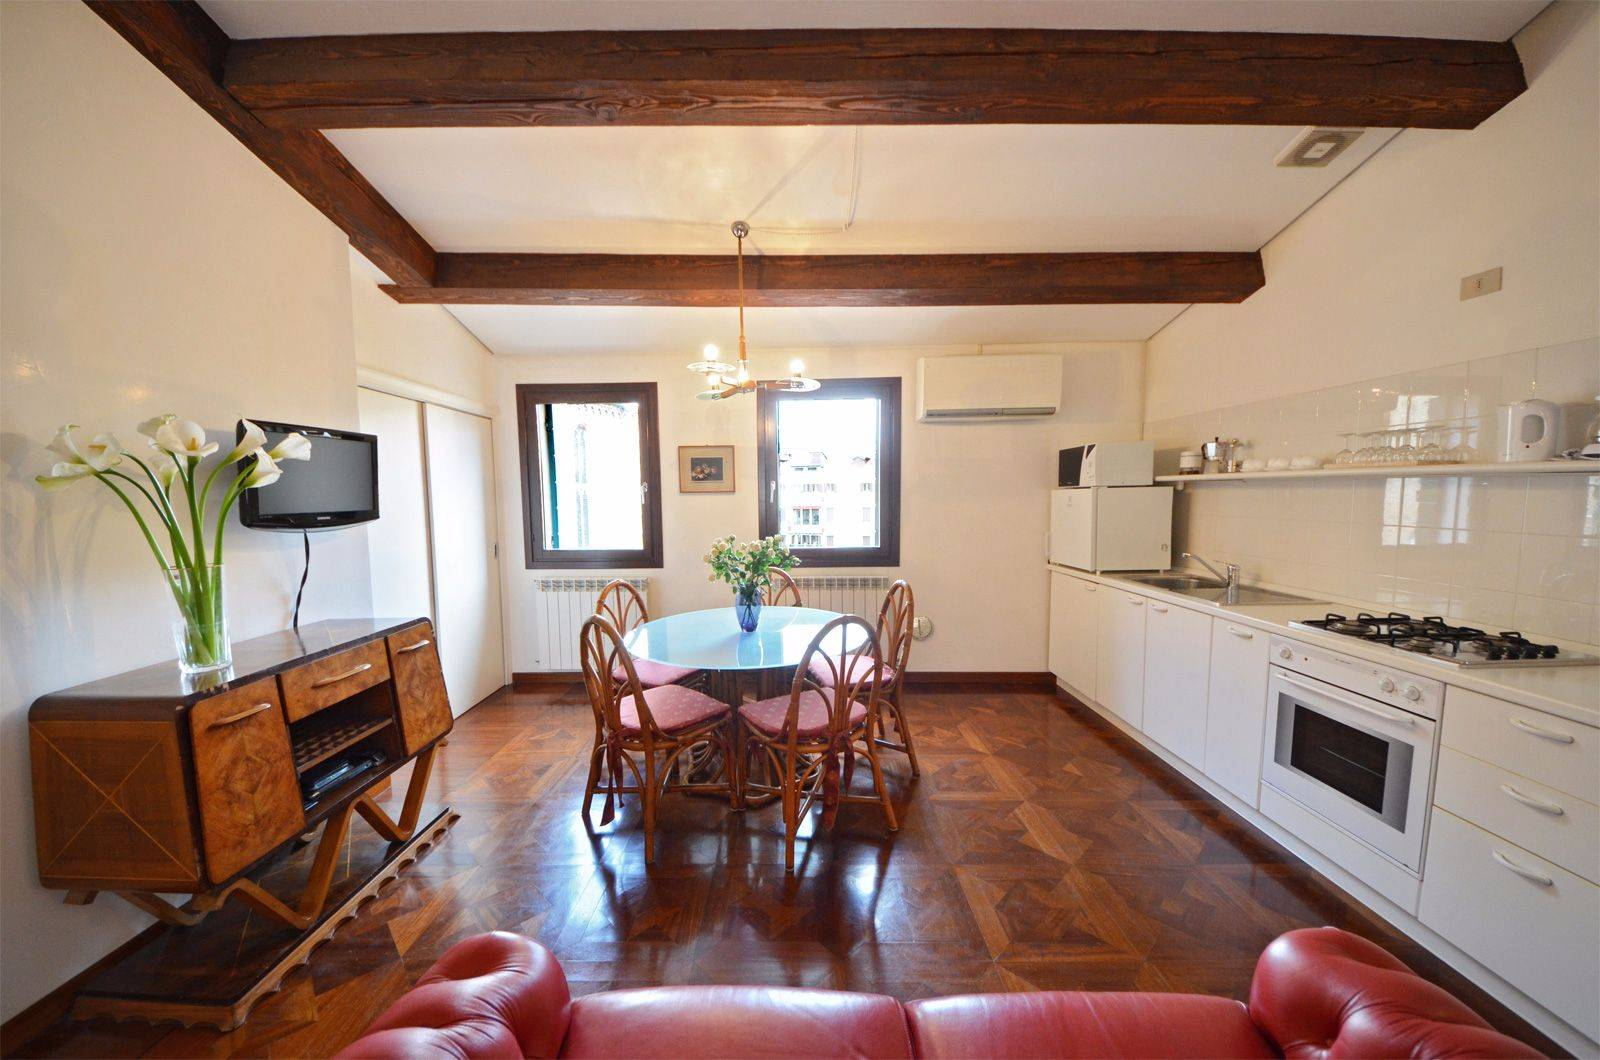 comfort, functionality, panoramic view and affordable pricing are some of the Frari apartment features